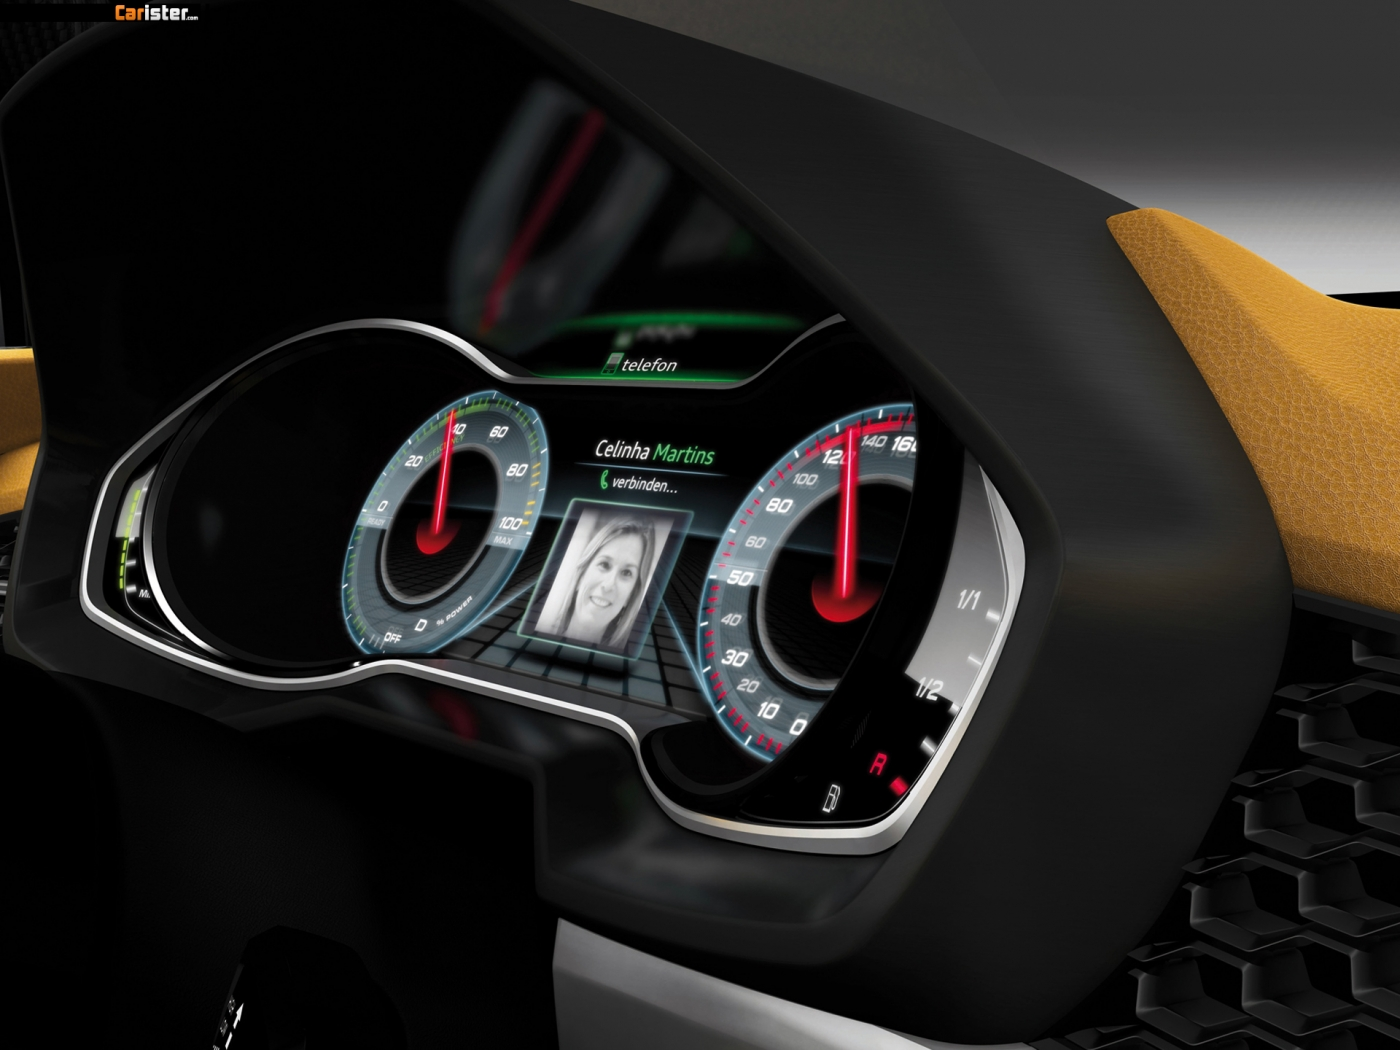 Audi Crosslane Coupe Concept 2012 - Photo 37 - Taille: 1400x1050